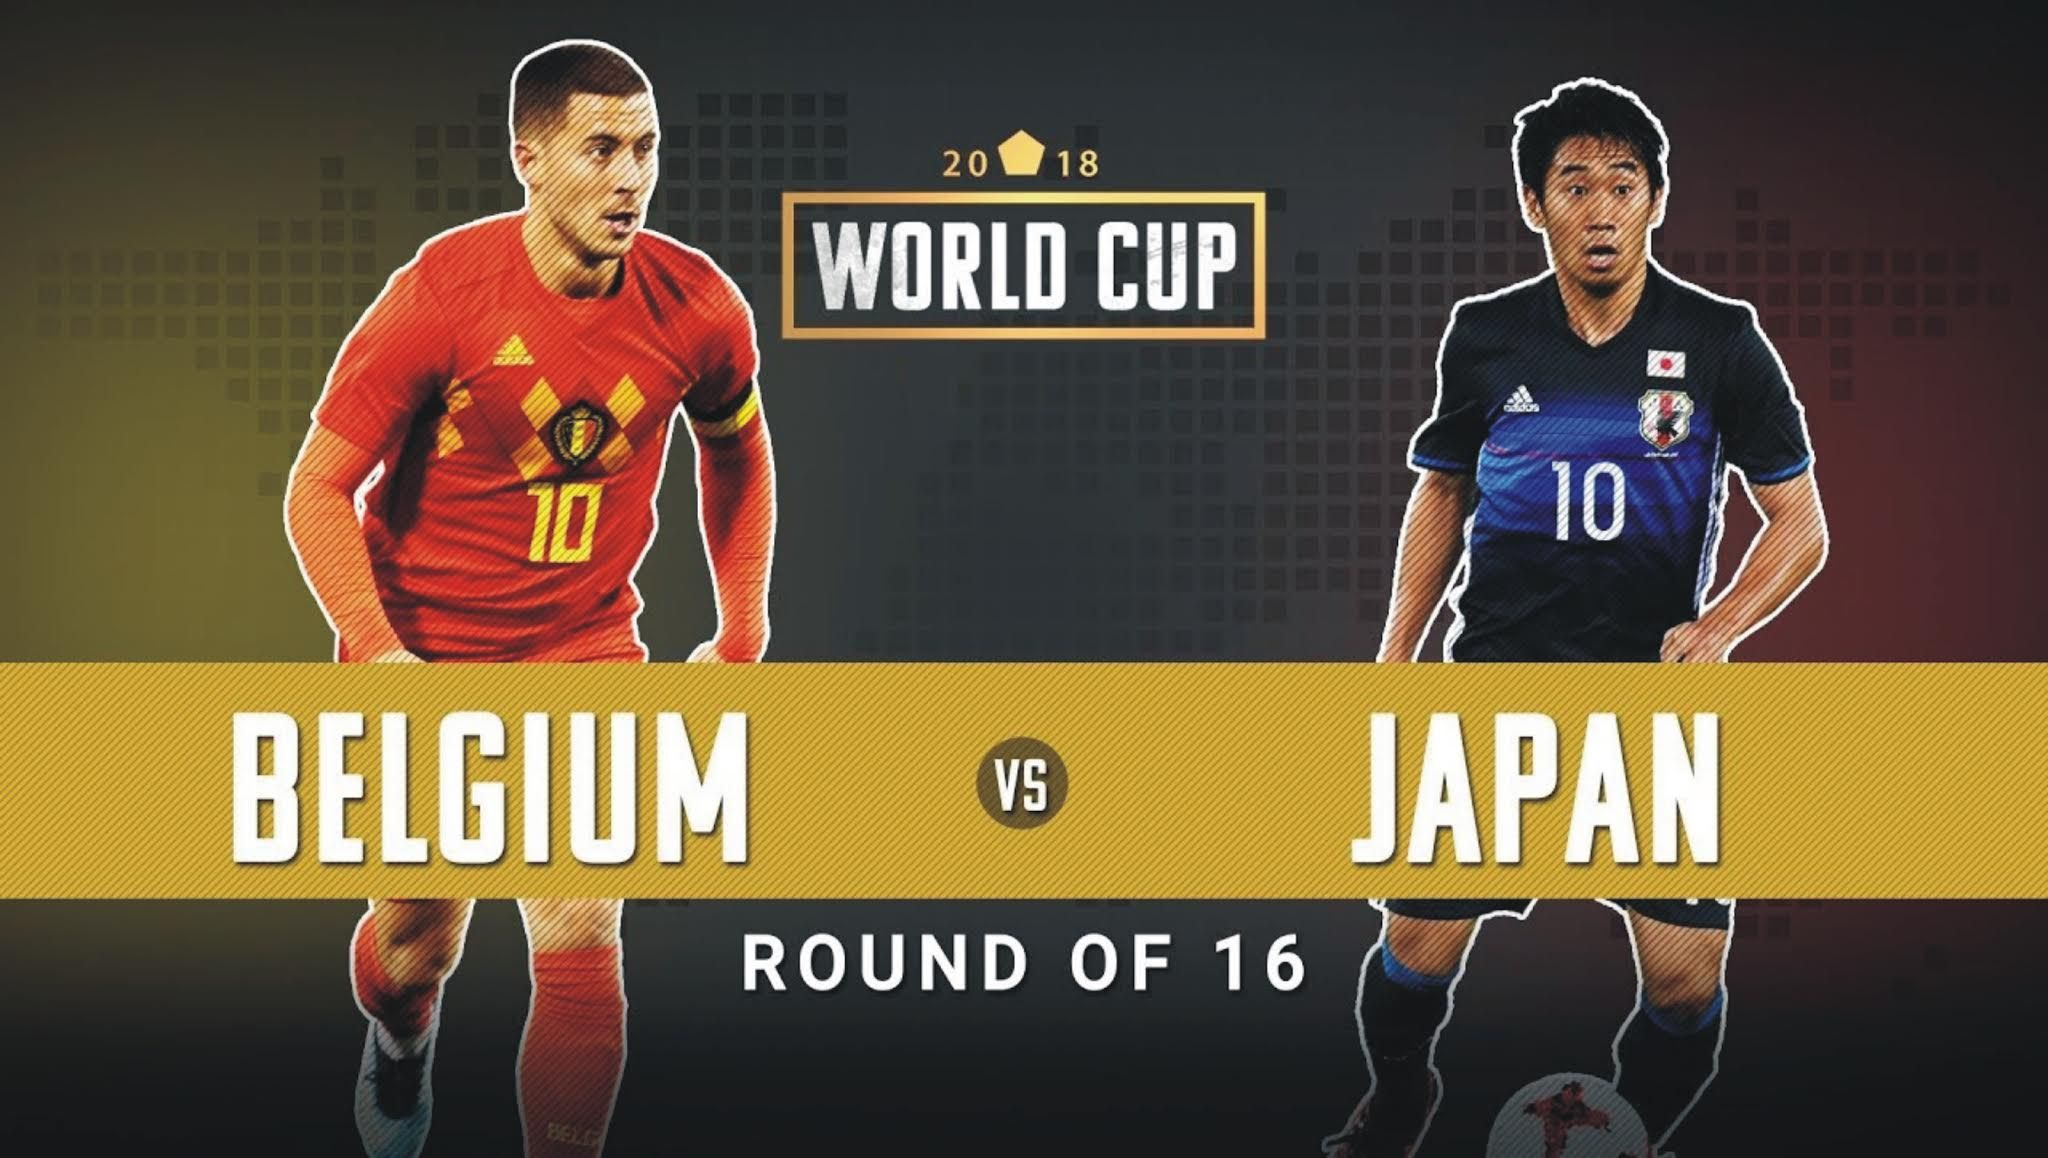 Belgium vs Japan World Cup 2018 Live Streaming & Schedule